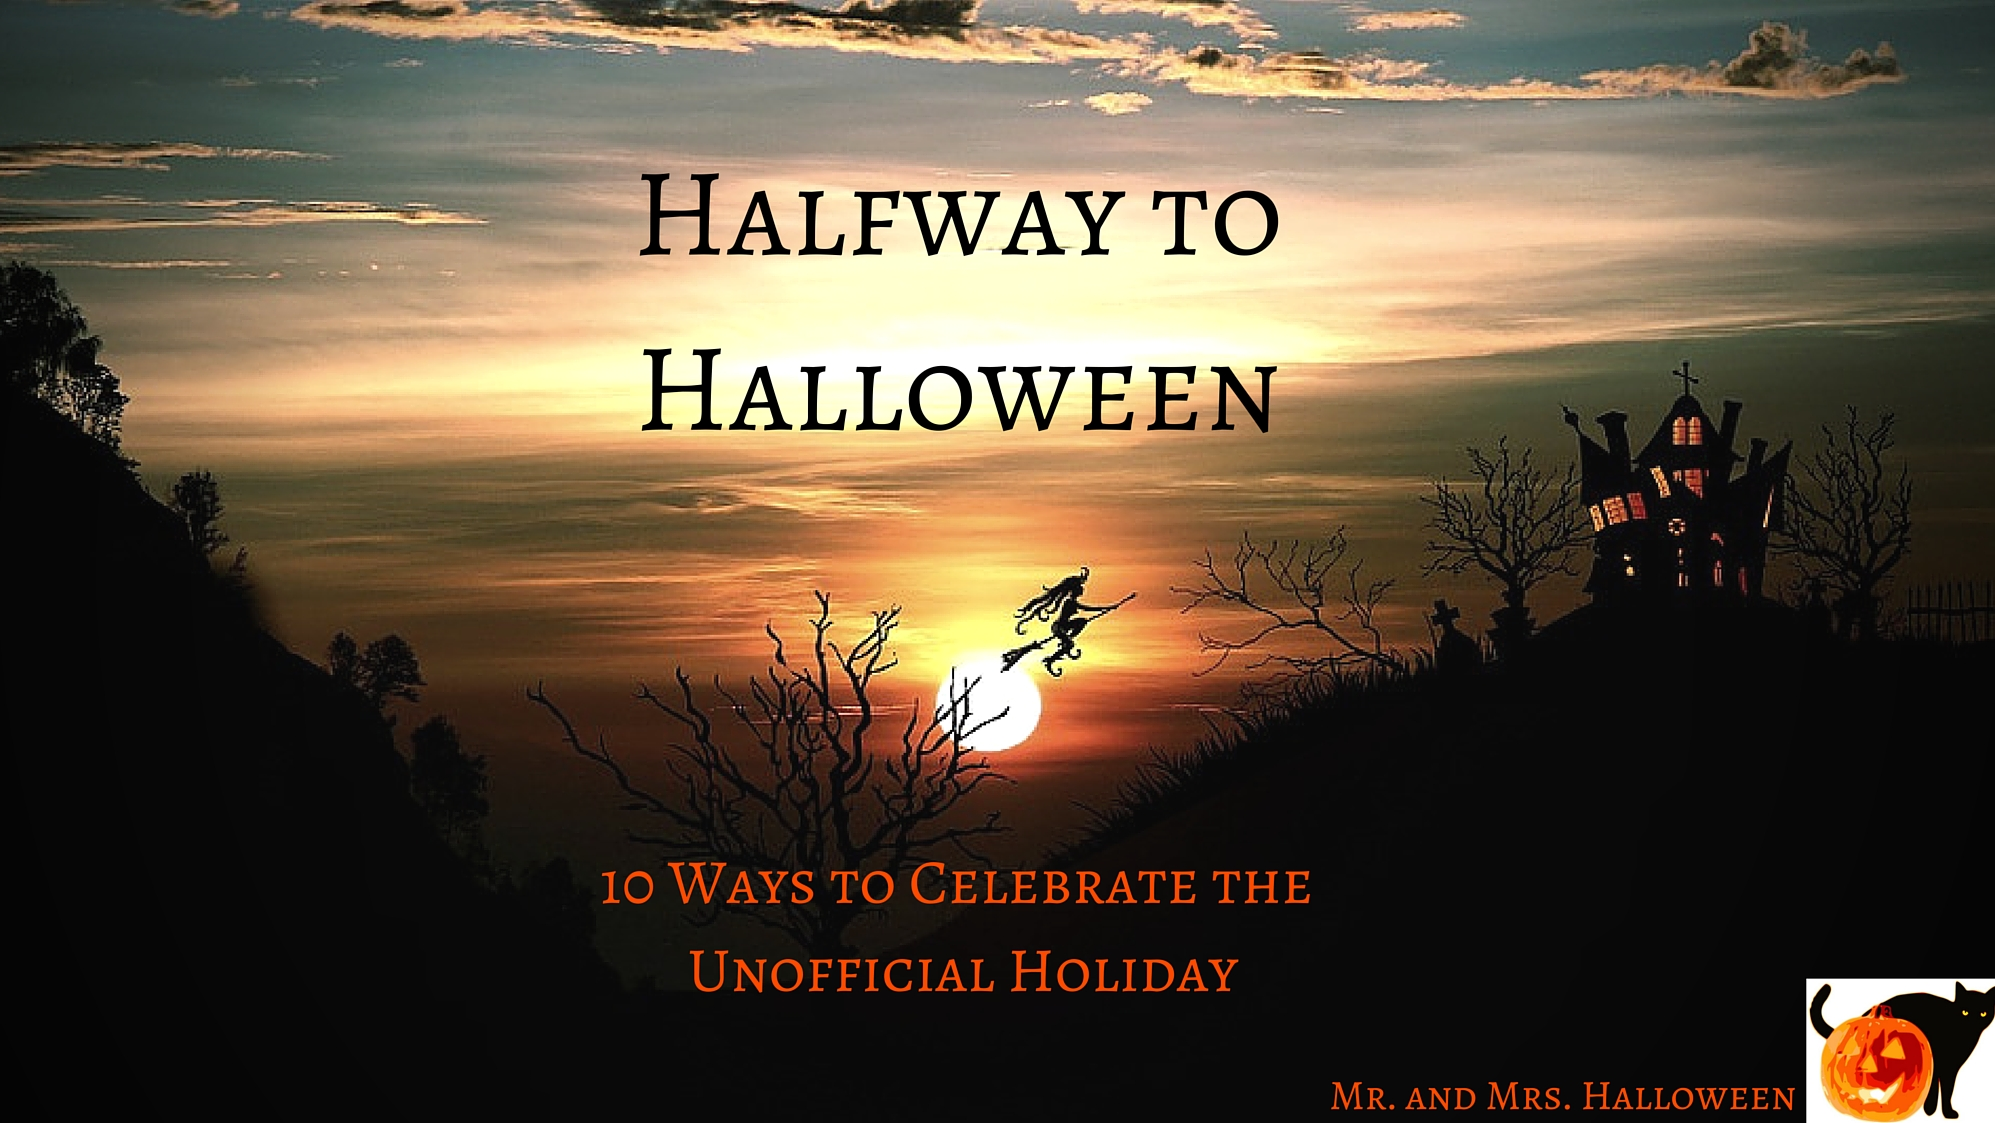 Halfway to Halloween: 10 Ways to Celebrate the Unofficial Holiday ...